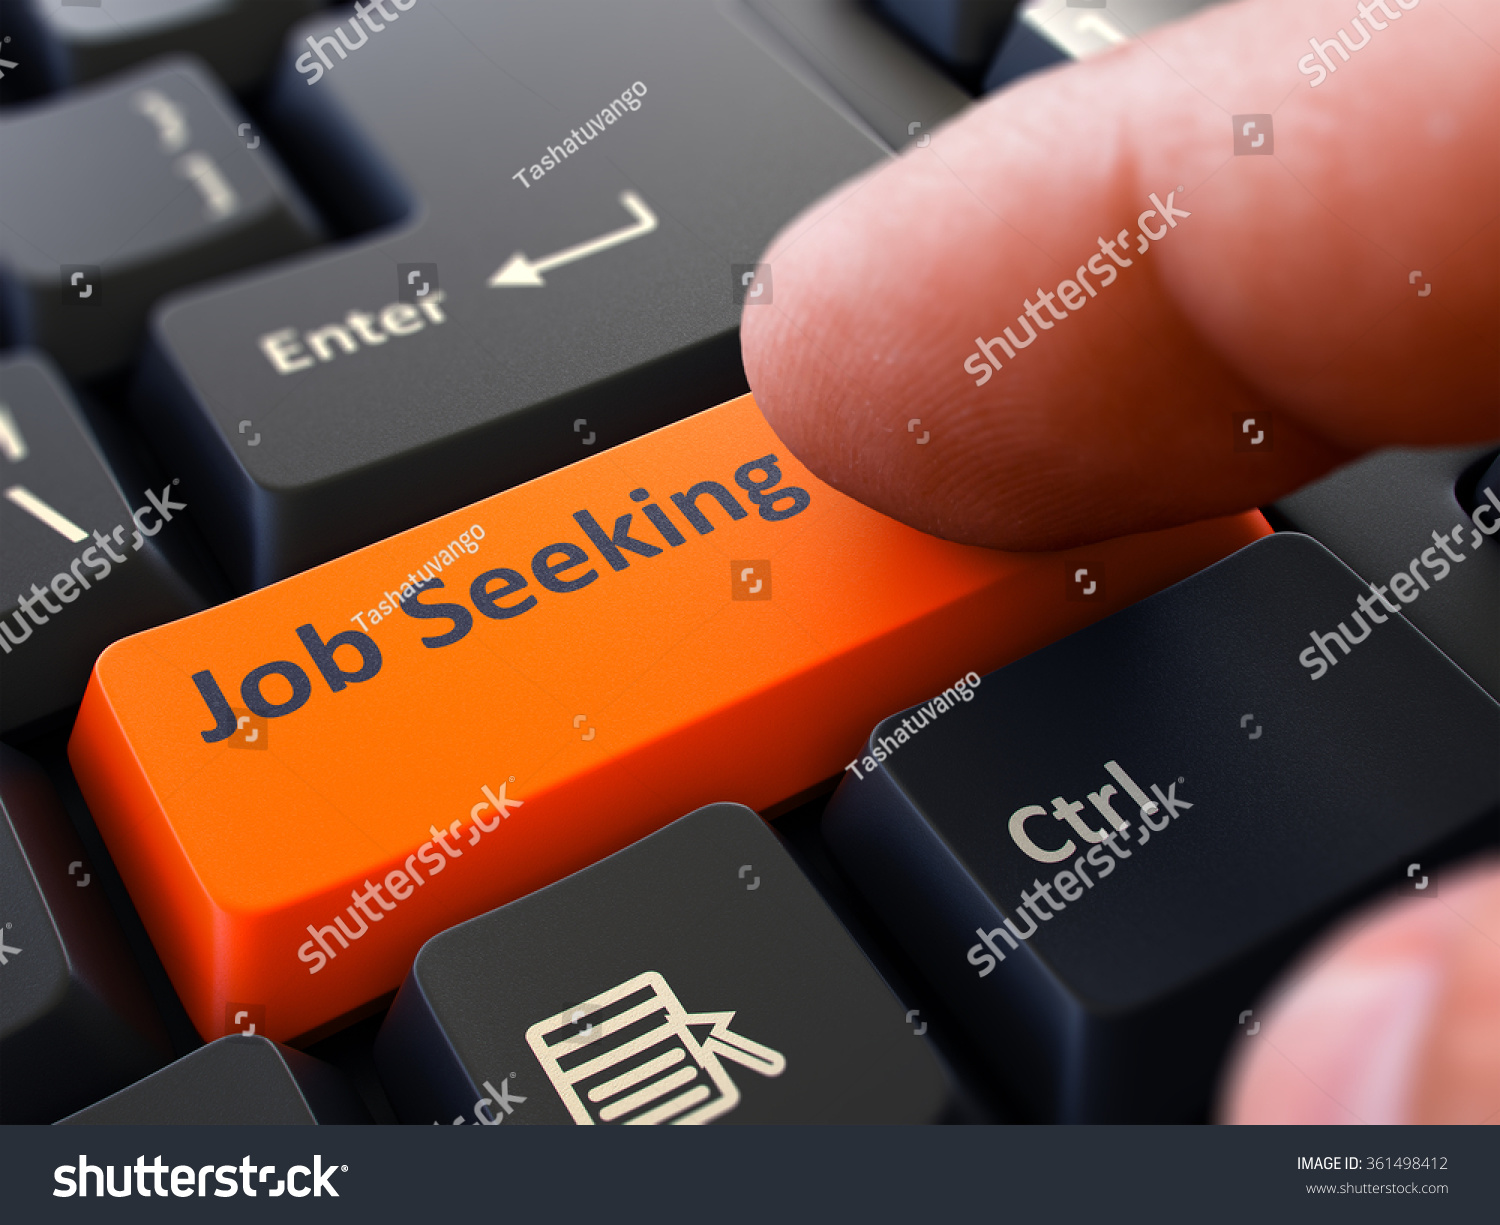 job seeking orange button finger pushing stock illustration job seeking orange button finger pushing button of black computer keyboard blurred background